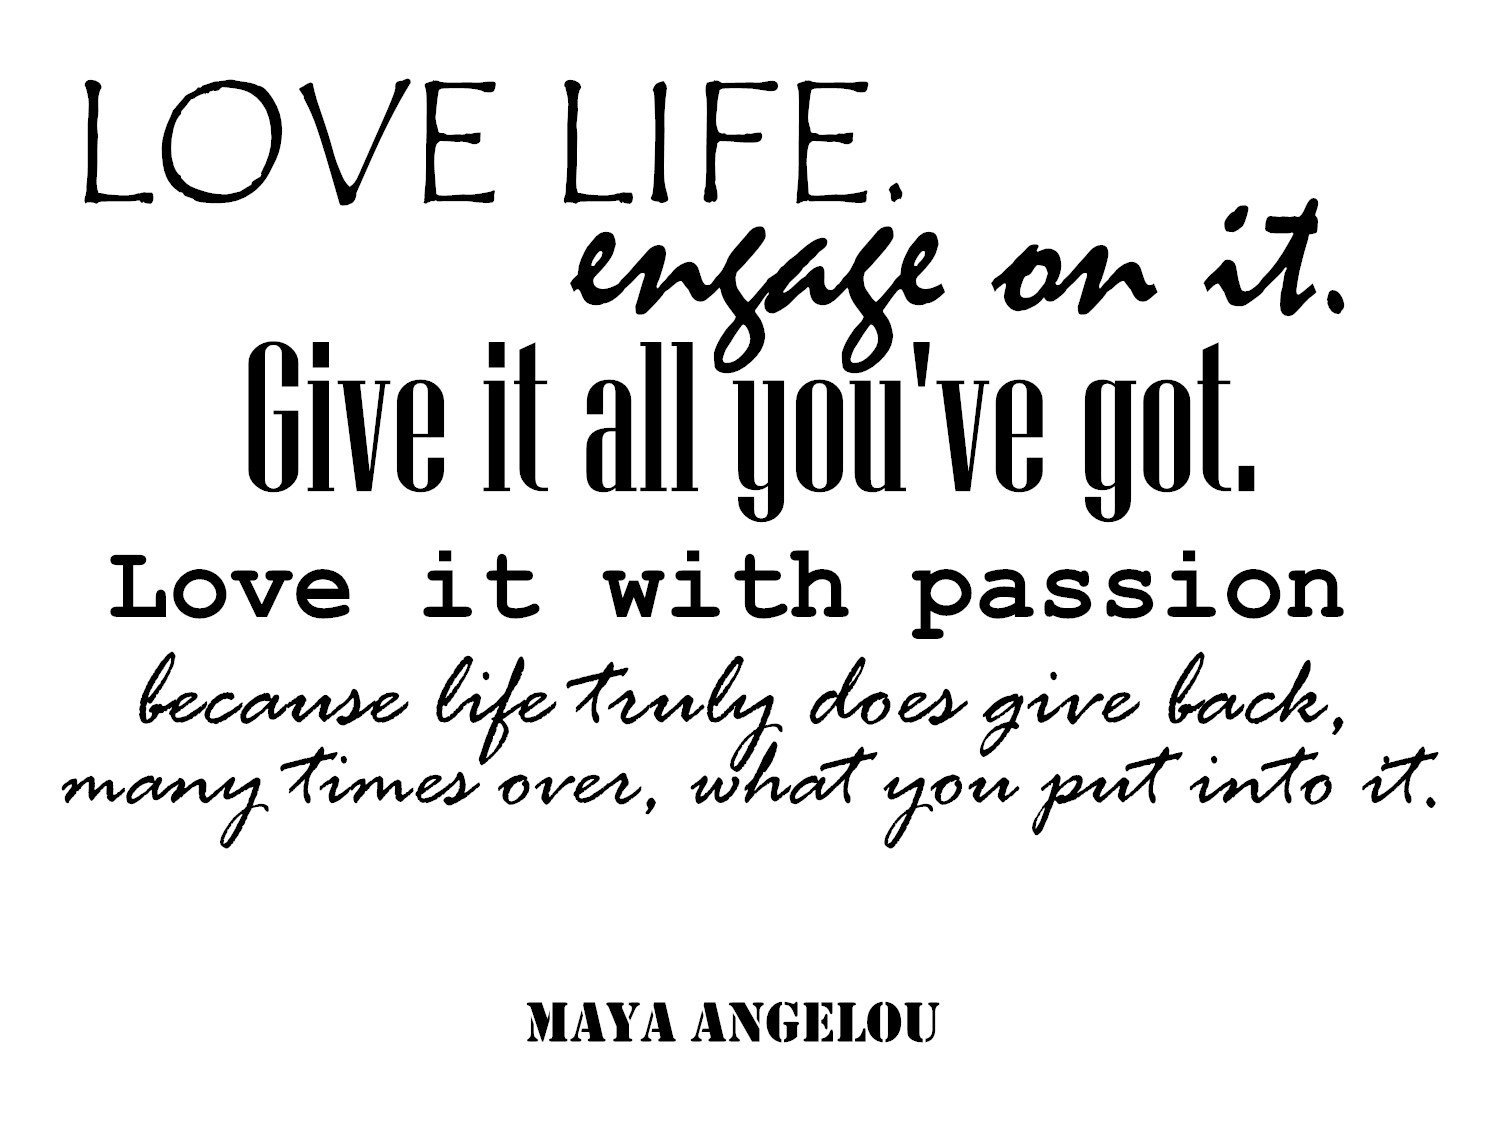 Maya Angelou Quotes Removable Wall Decals: Famous Quotes Wall Decals. A Wall Decal Quote Decal Vinyl Stickers. Premium Motivational Quotes Decals. Inspirational Wall Art Decor Made in USA - BLACK